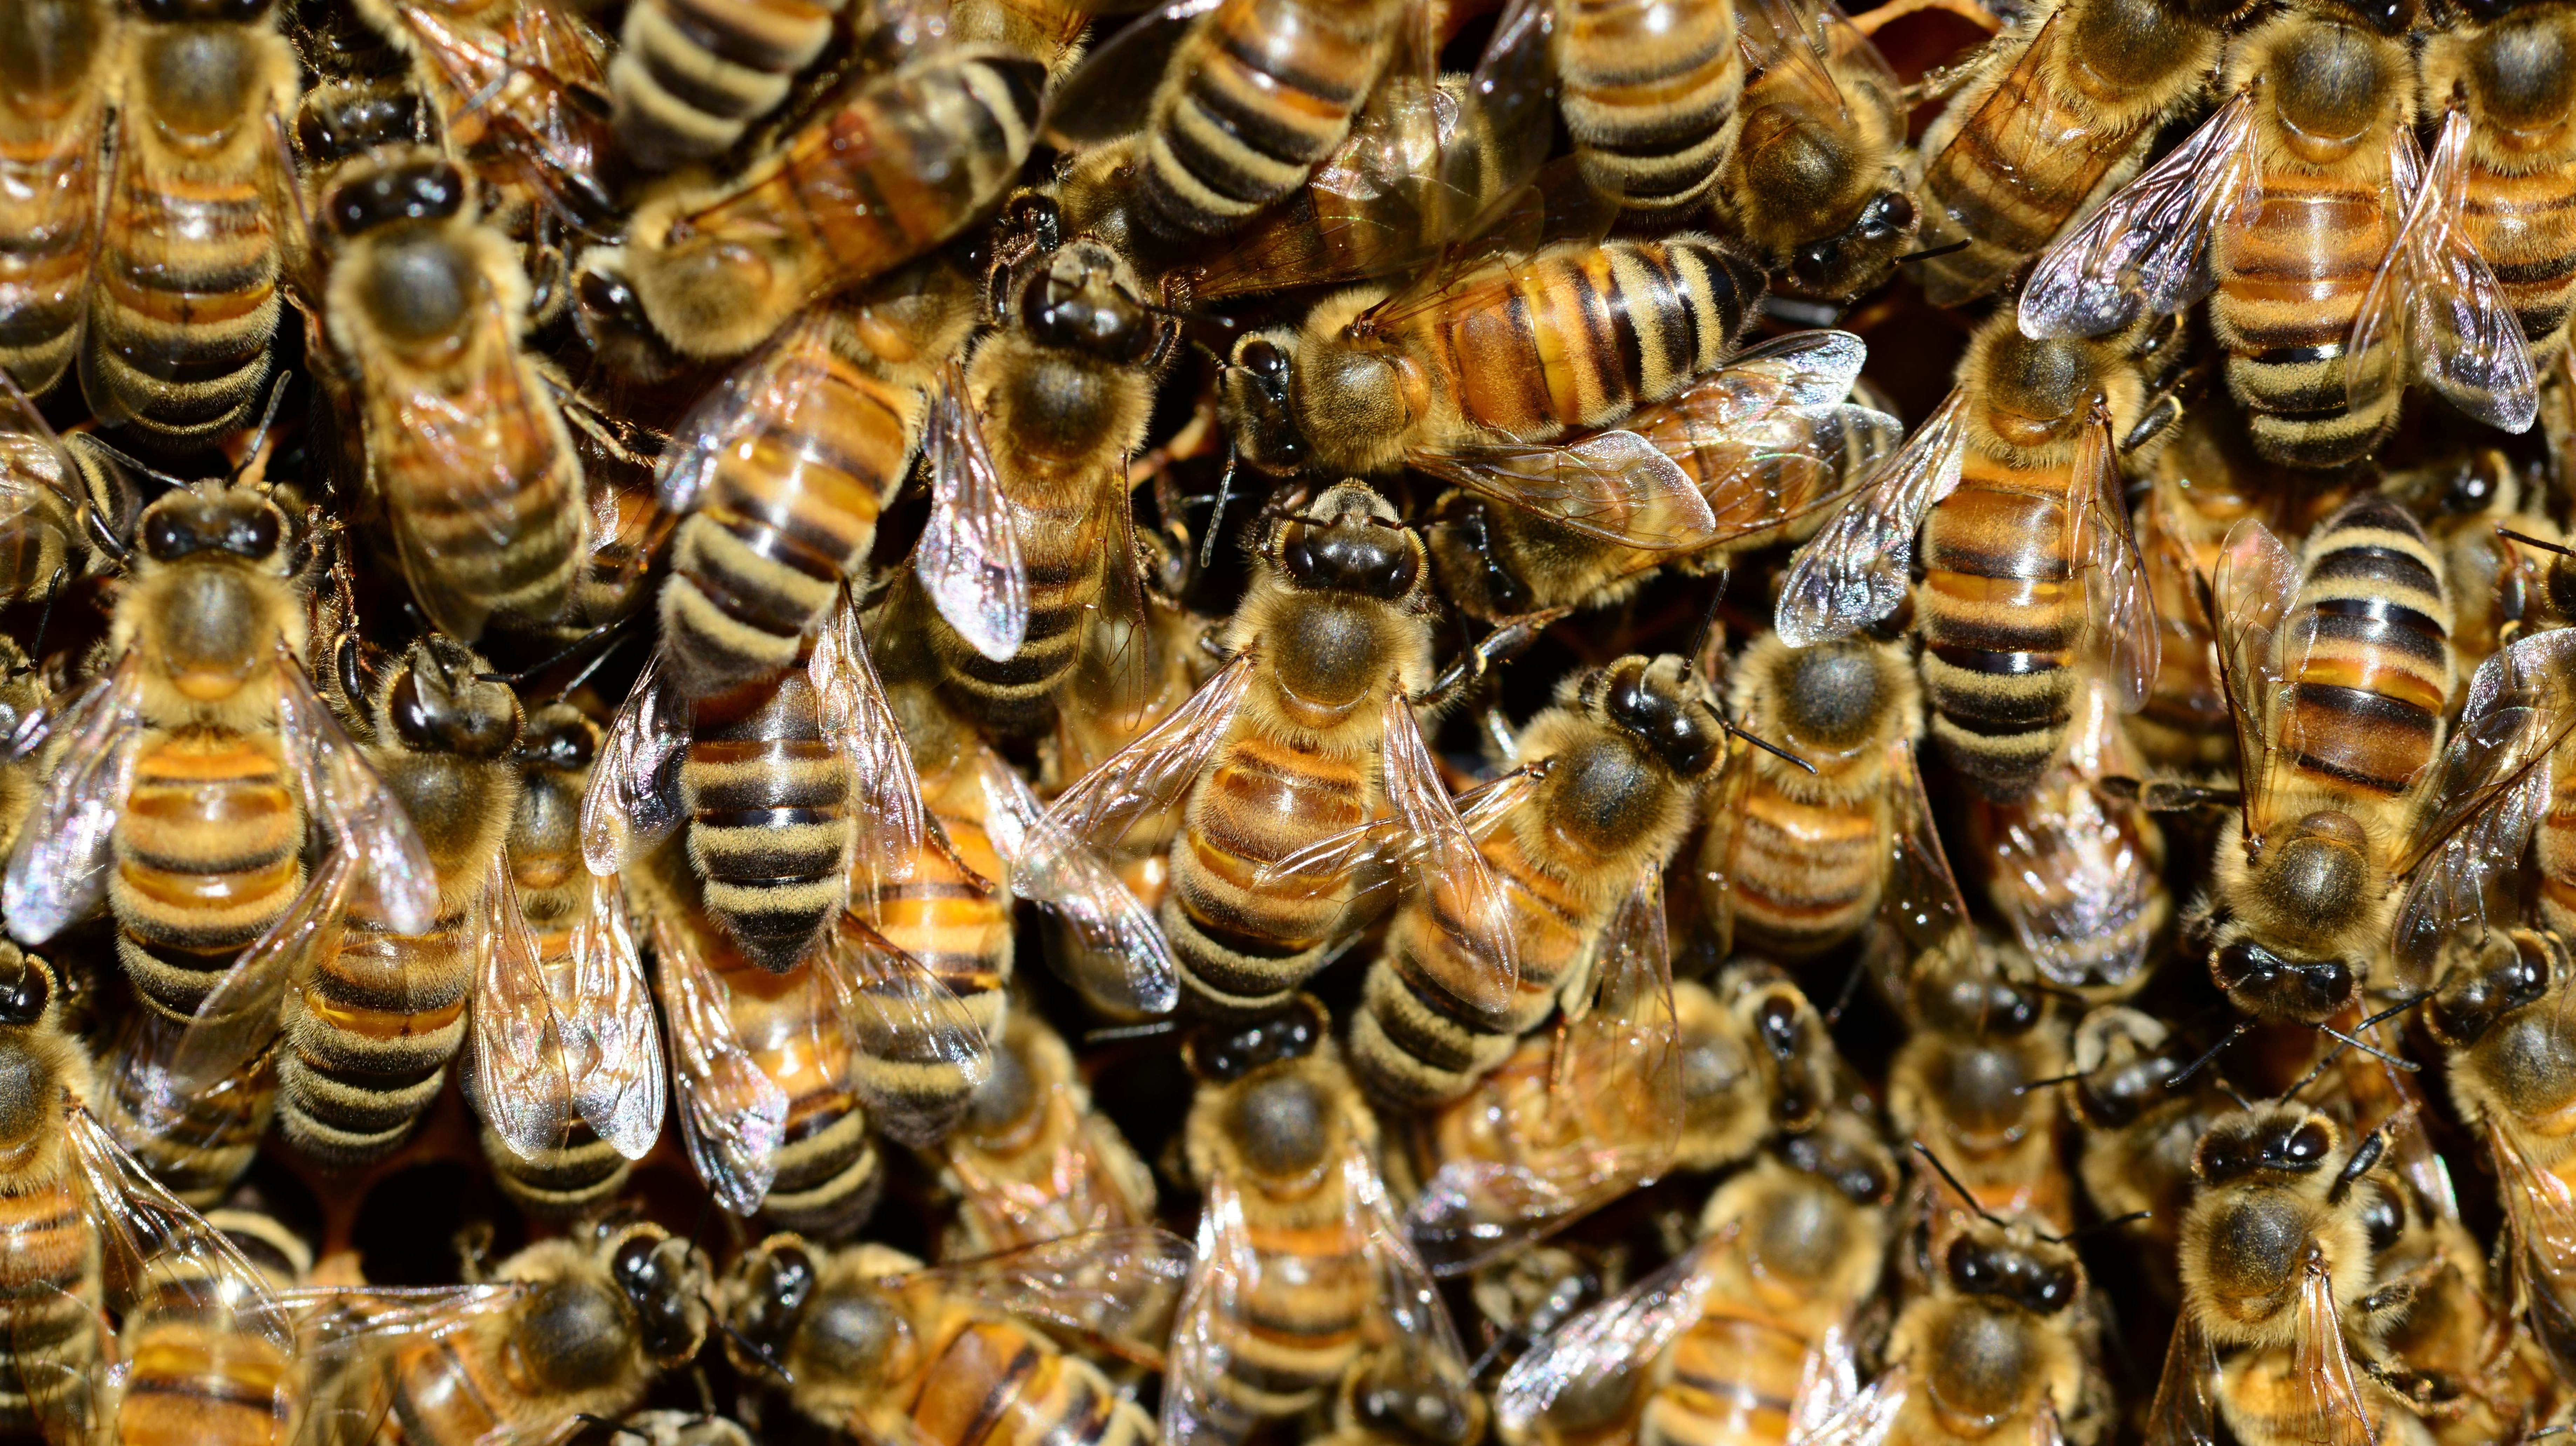 Call A Beekeeper, Not An Exterminator